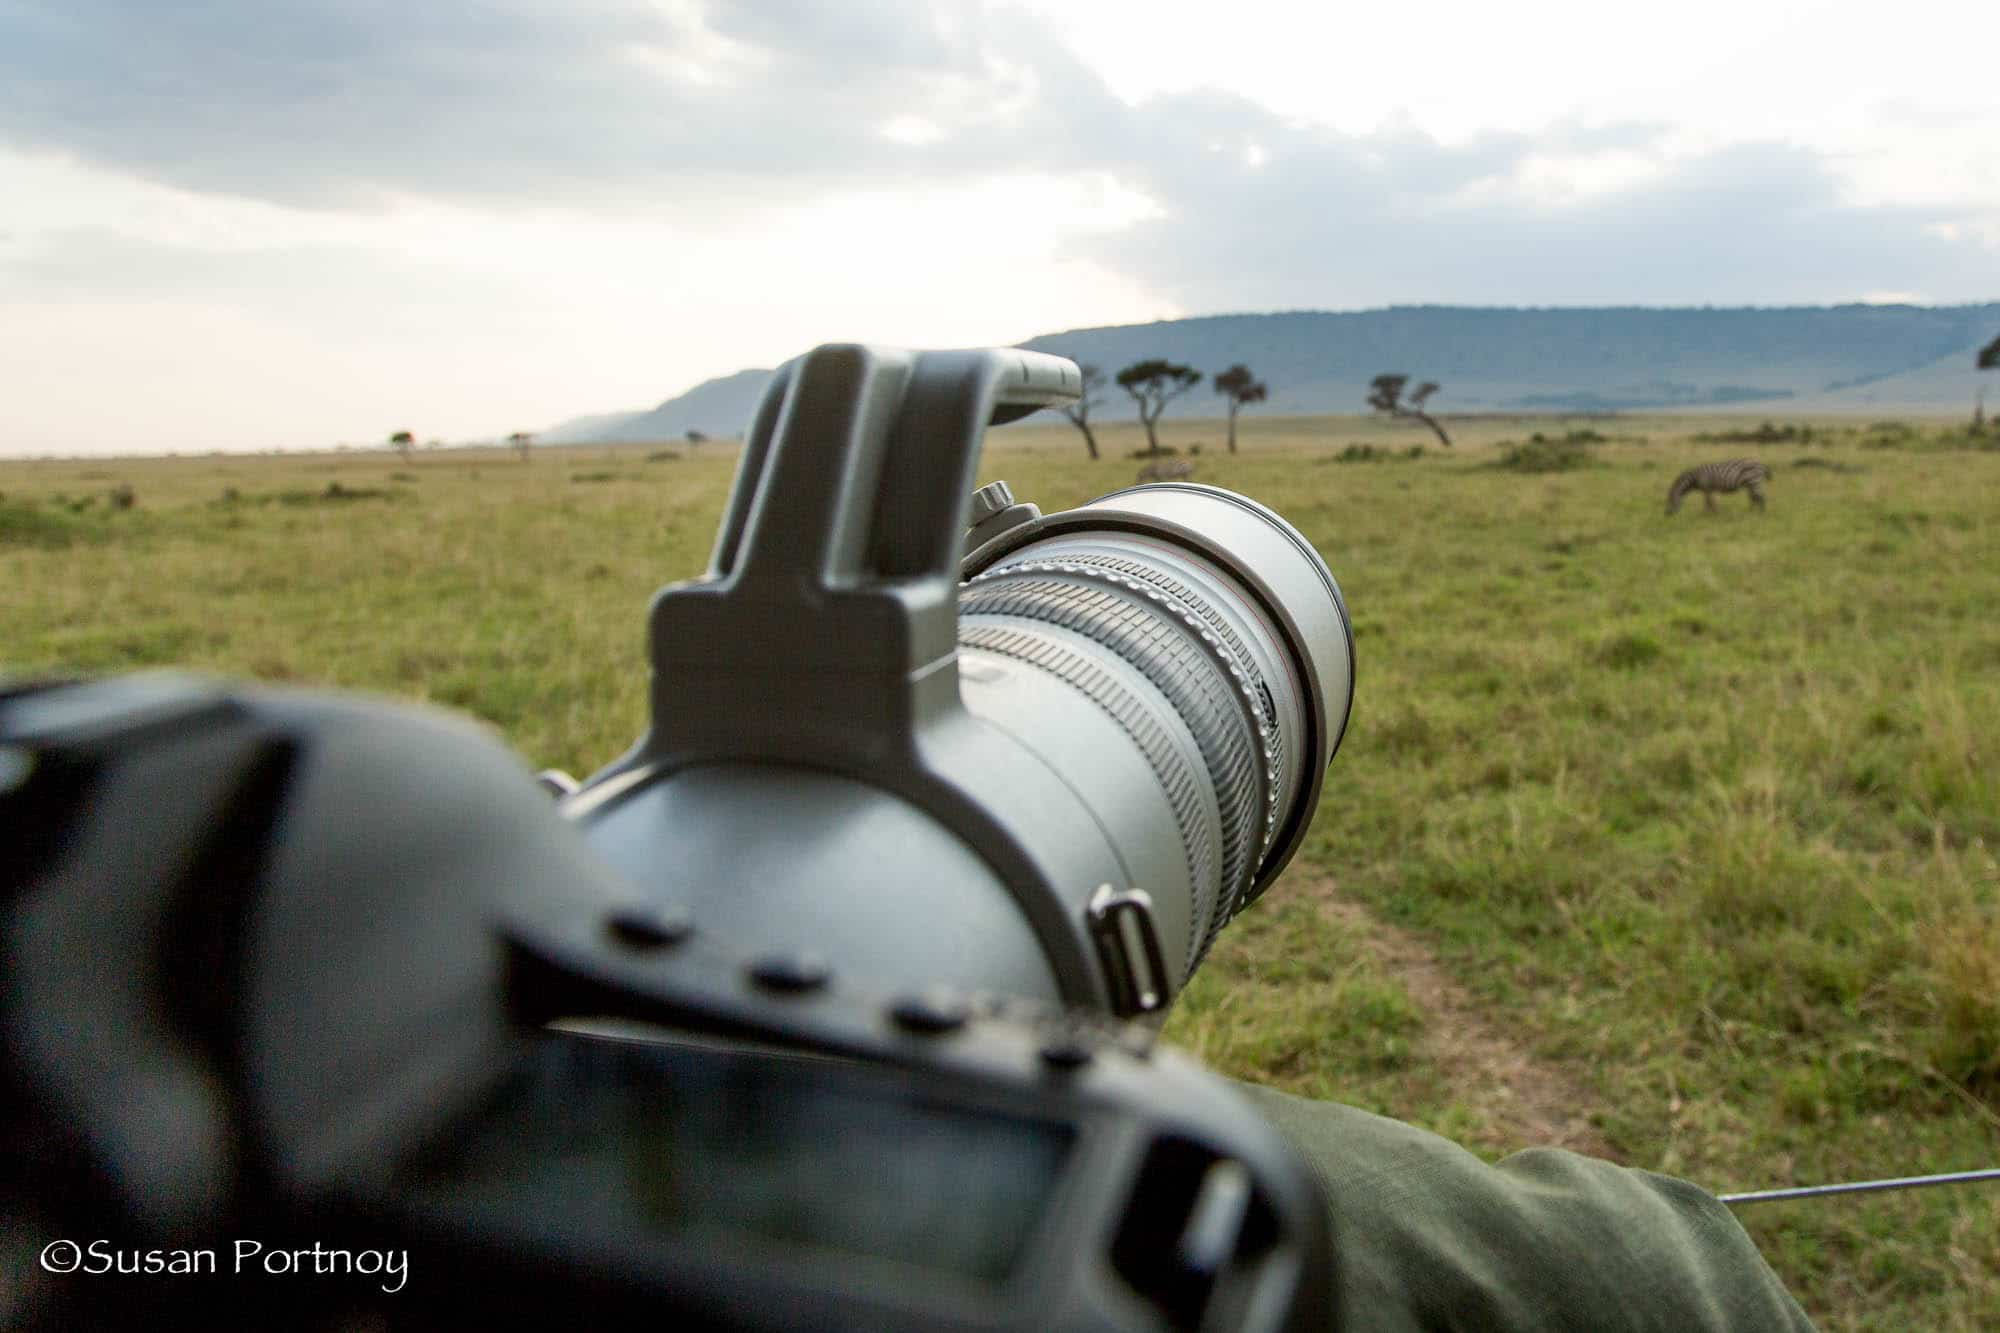 My camera pointing towards a lion very far away in a tree during a game drive on safari.